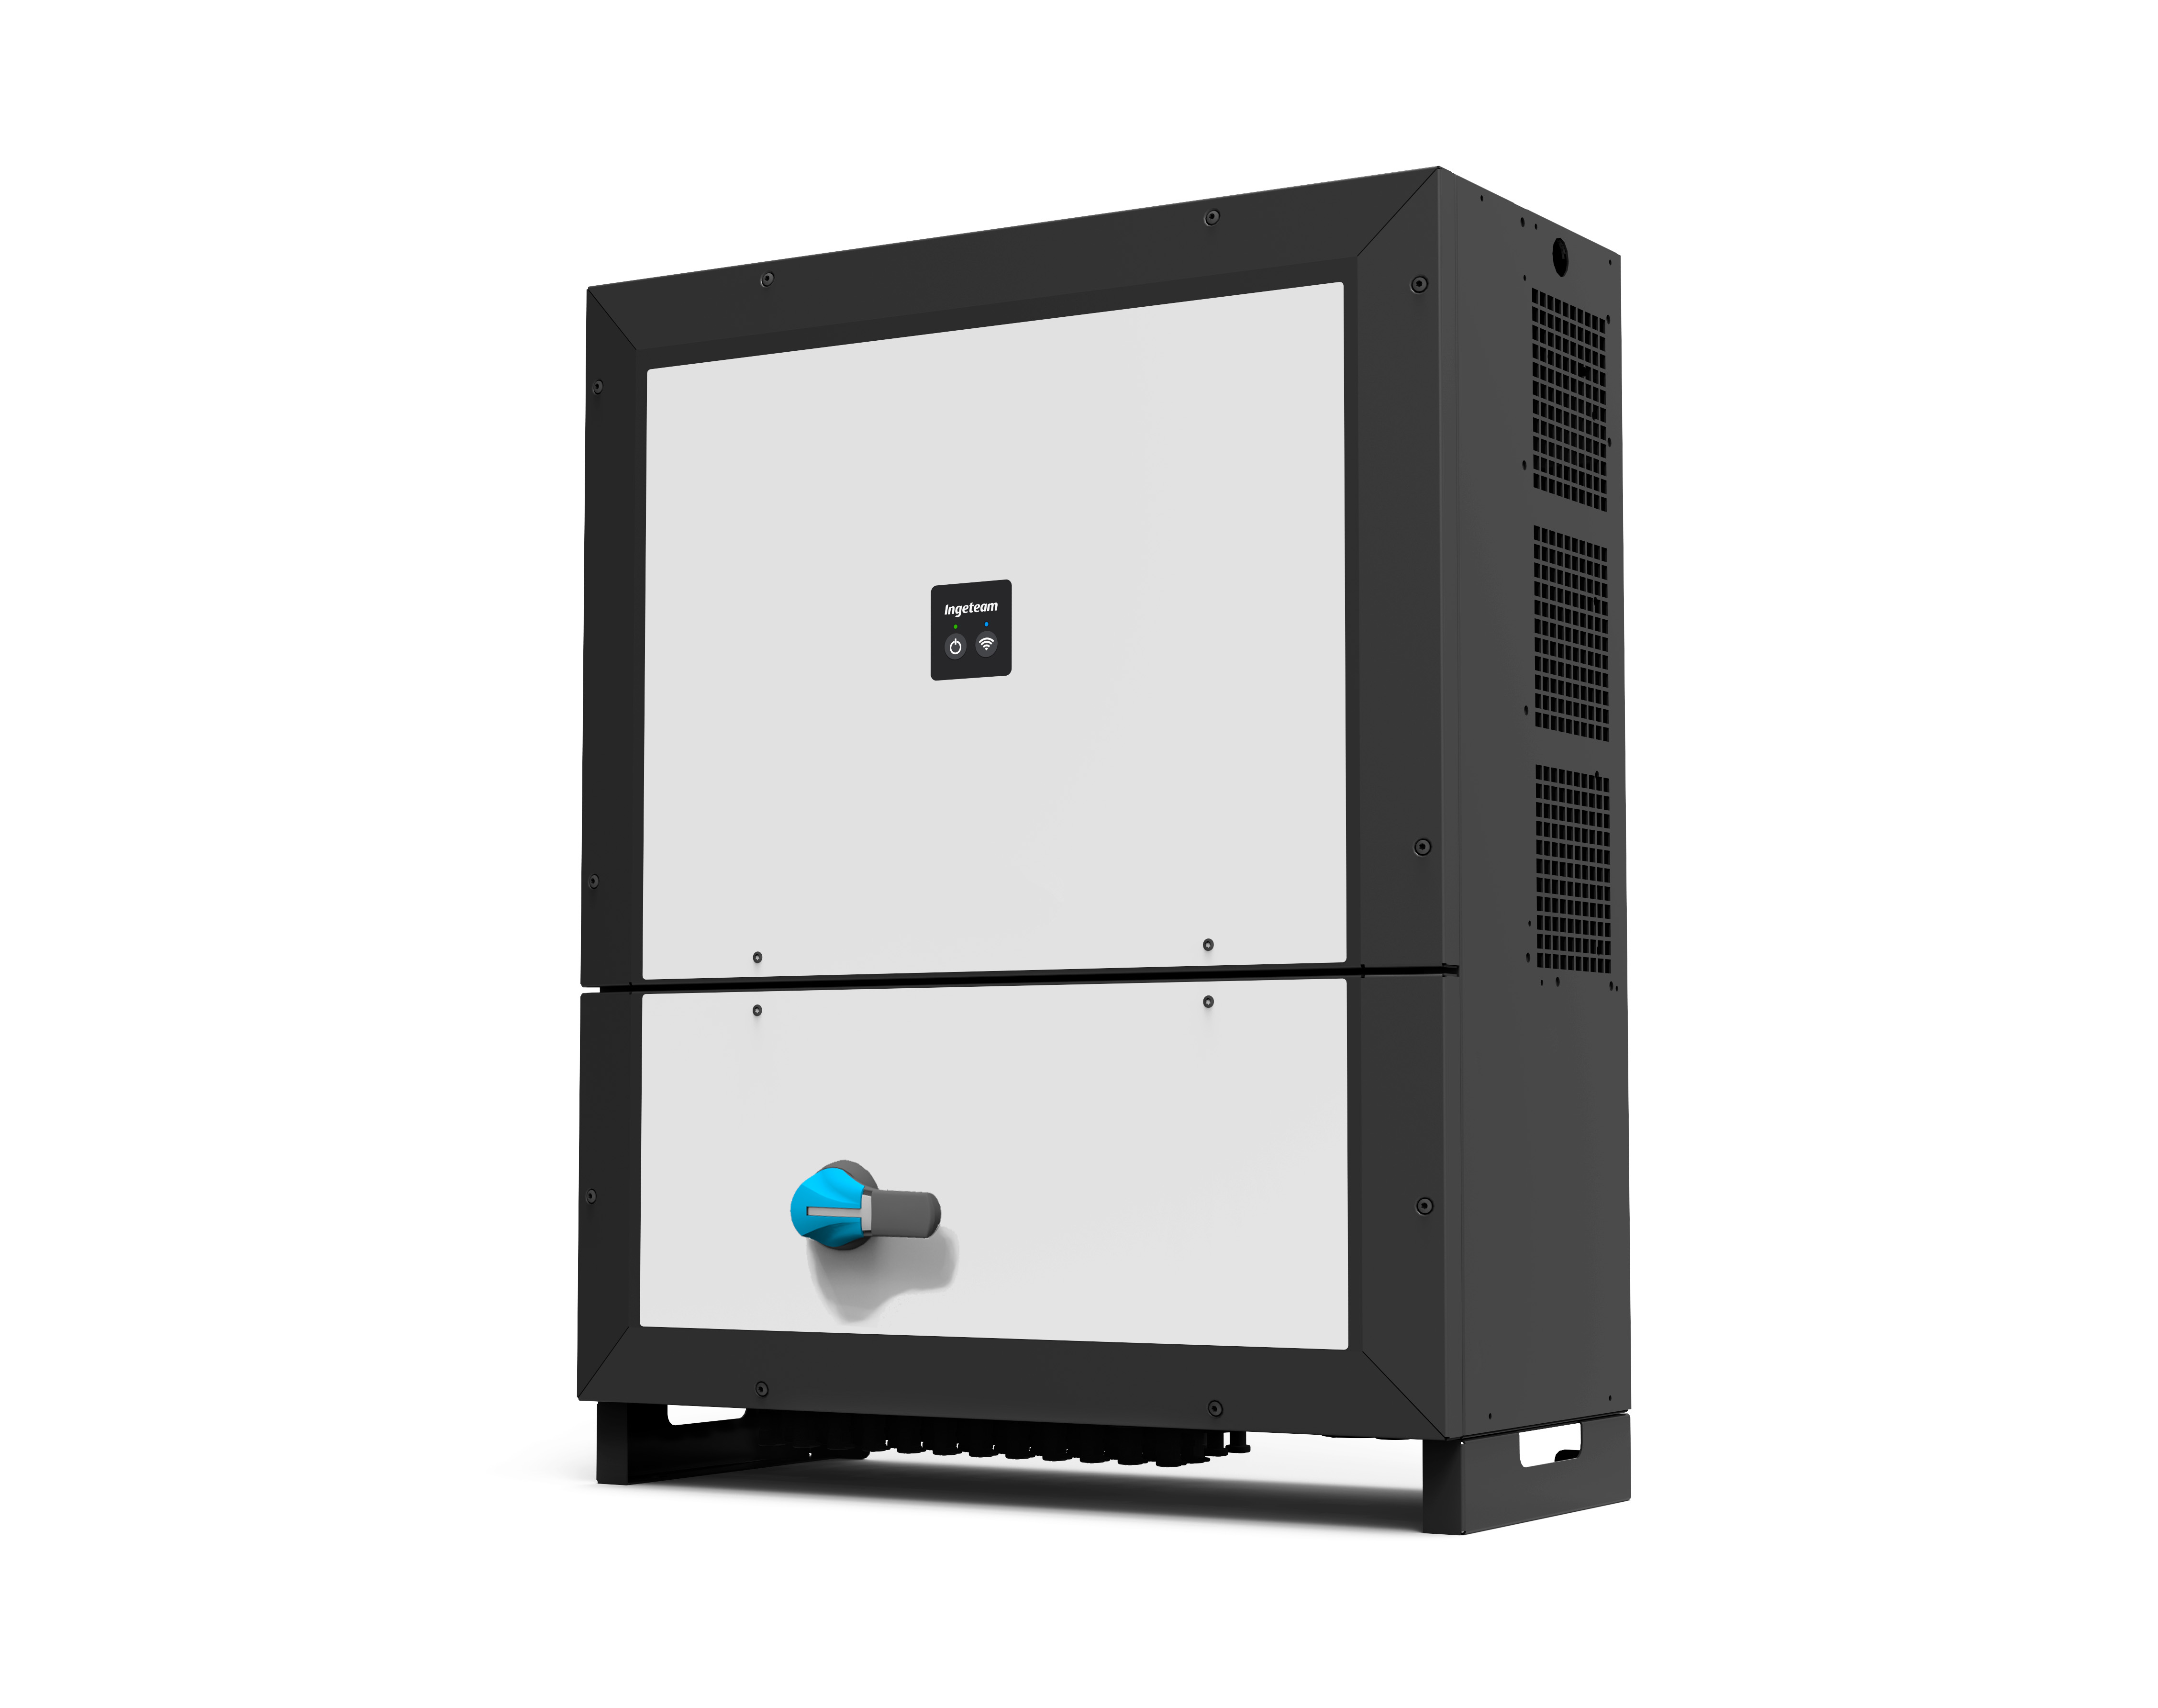 Ingeteam launches its new PV string inverter featuring 1500 Vdc technology